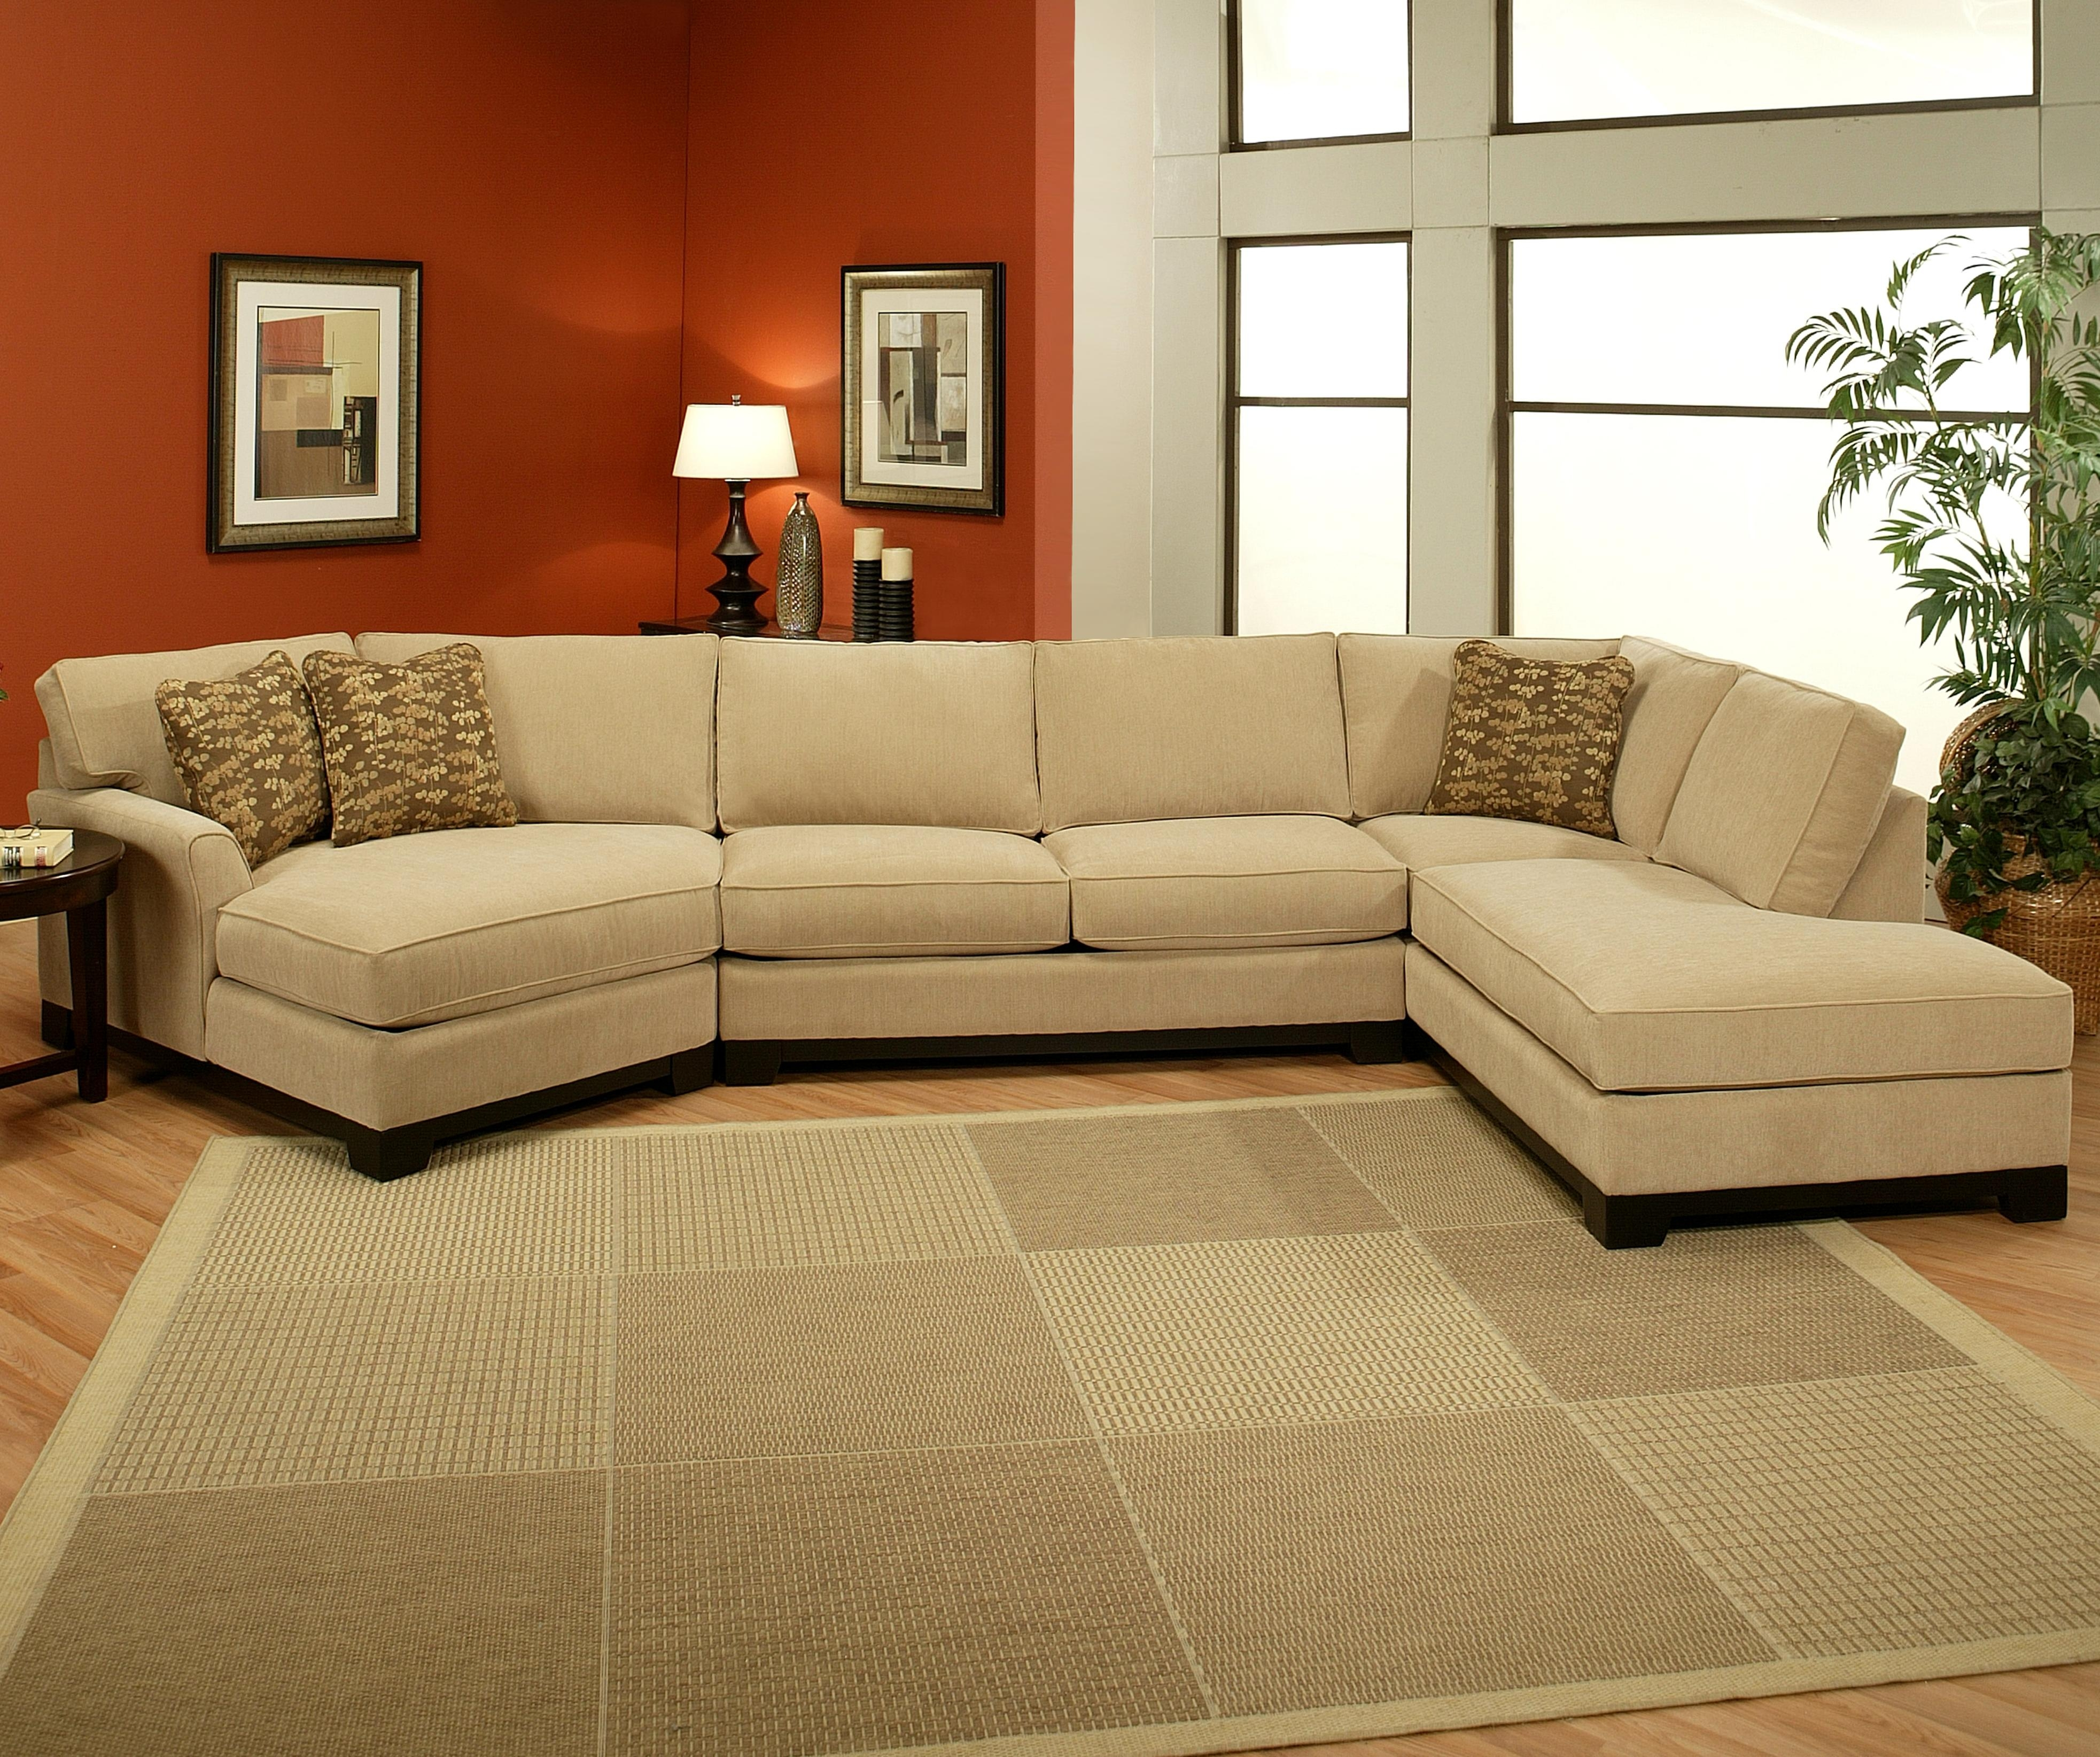 Sagittarius 3 Pc Sectional Jonathan Louis New Home Ideas Pertaining To Cuddler Sectional Sofa (Image 12 of 15)